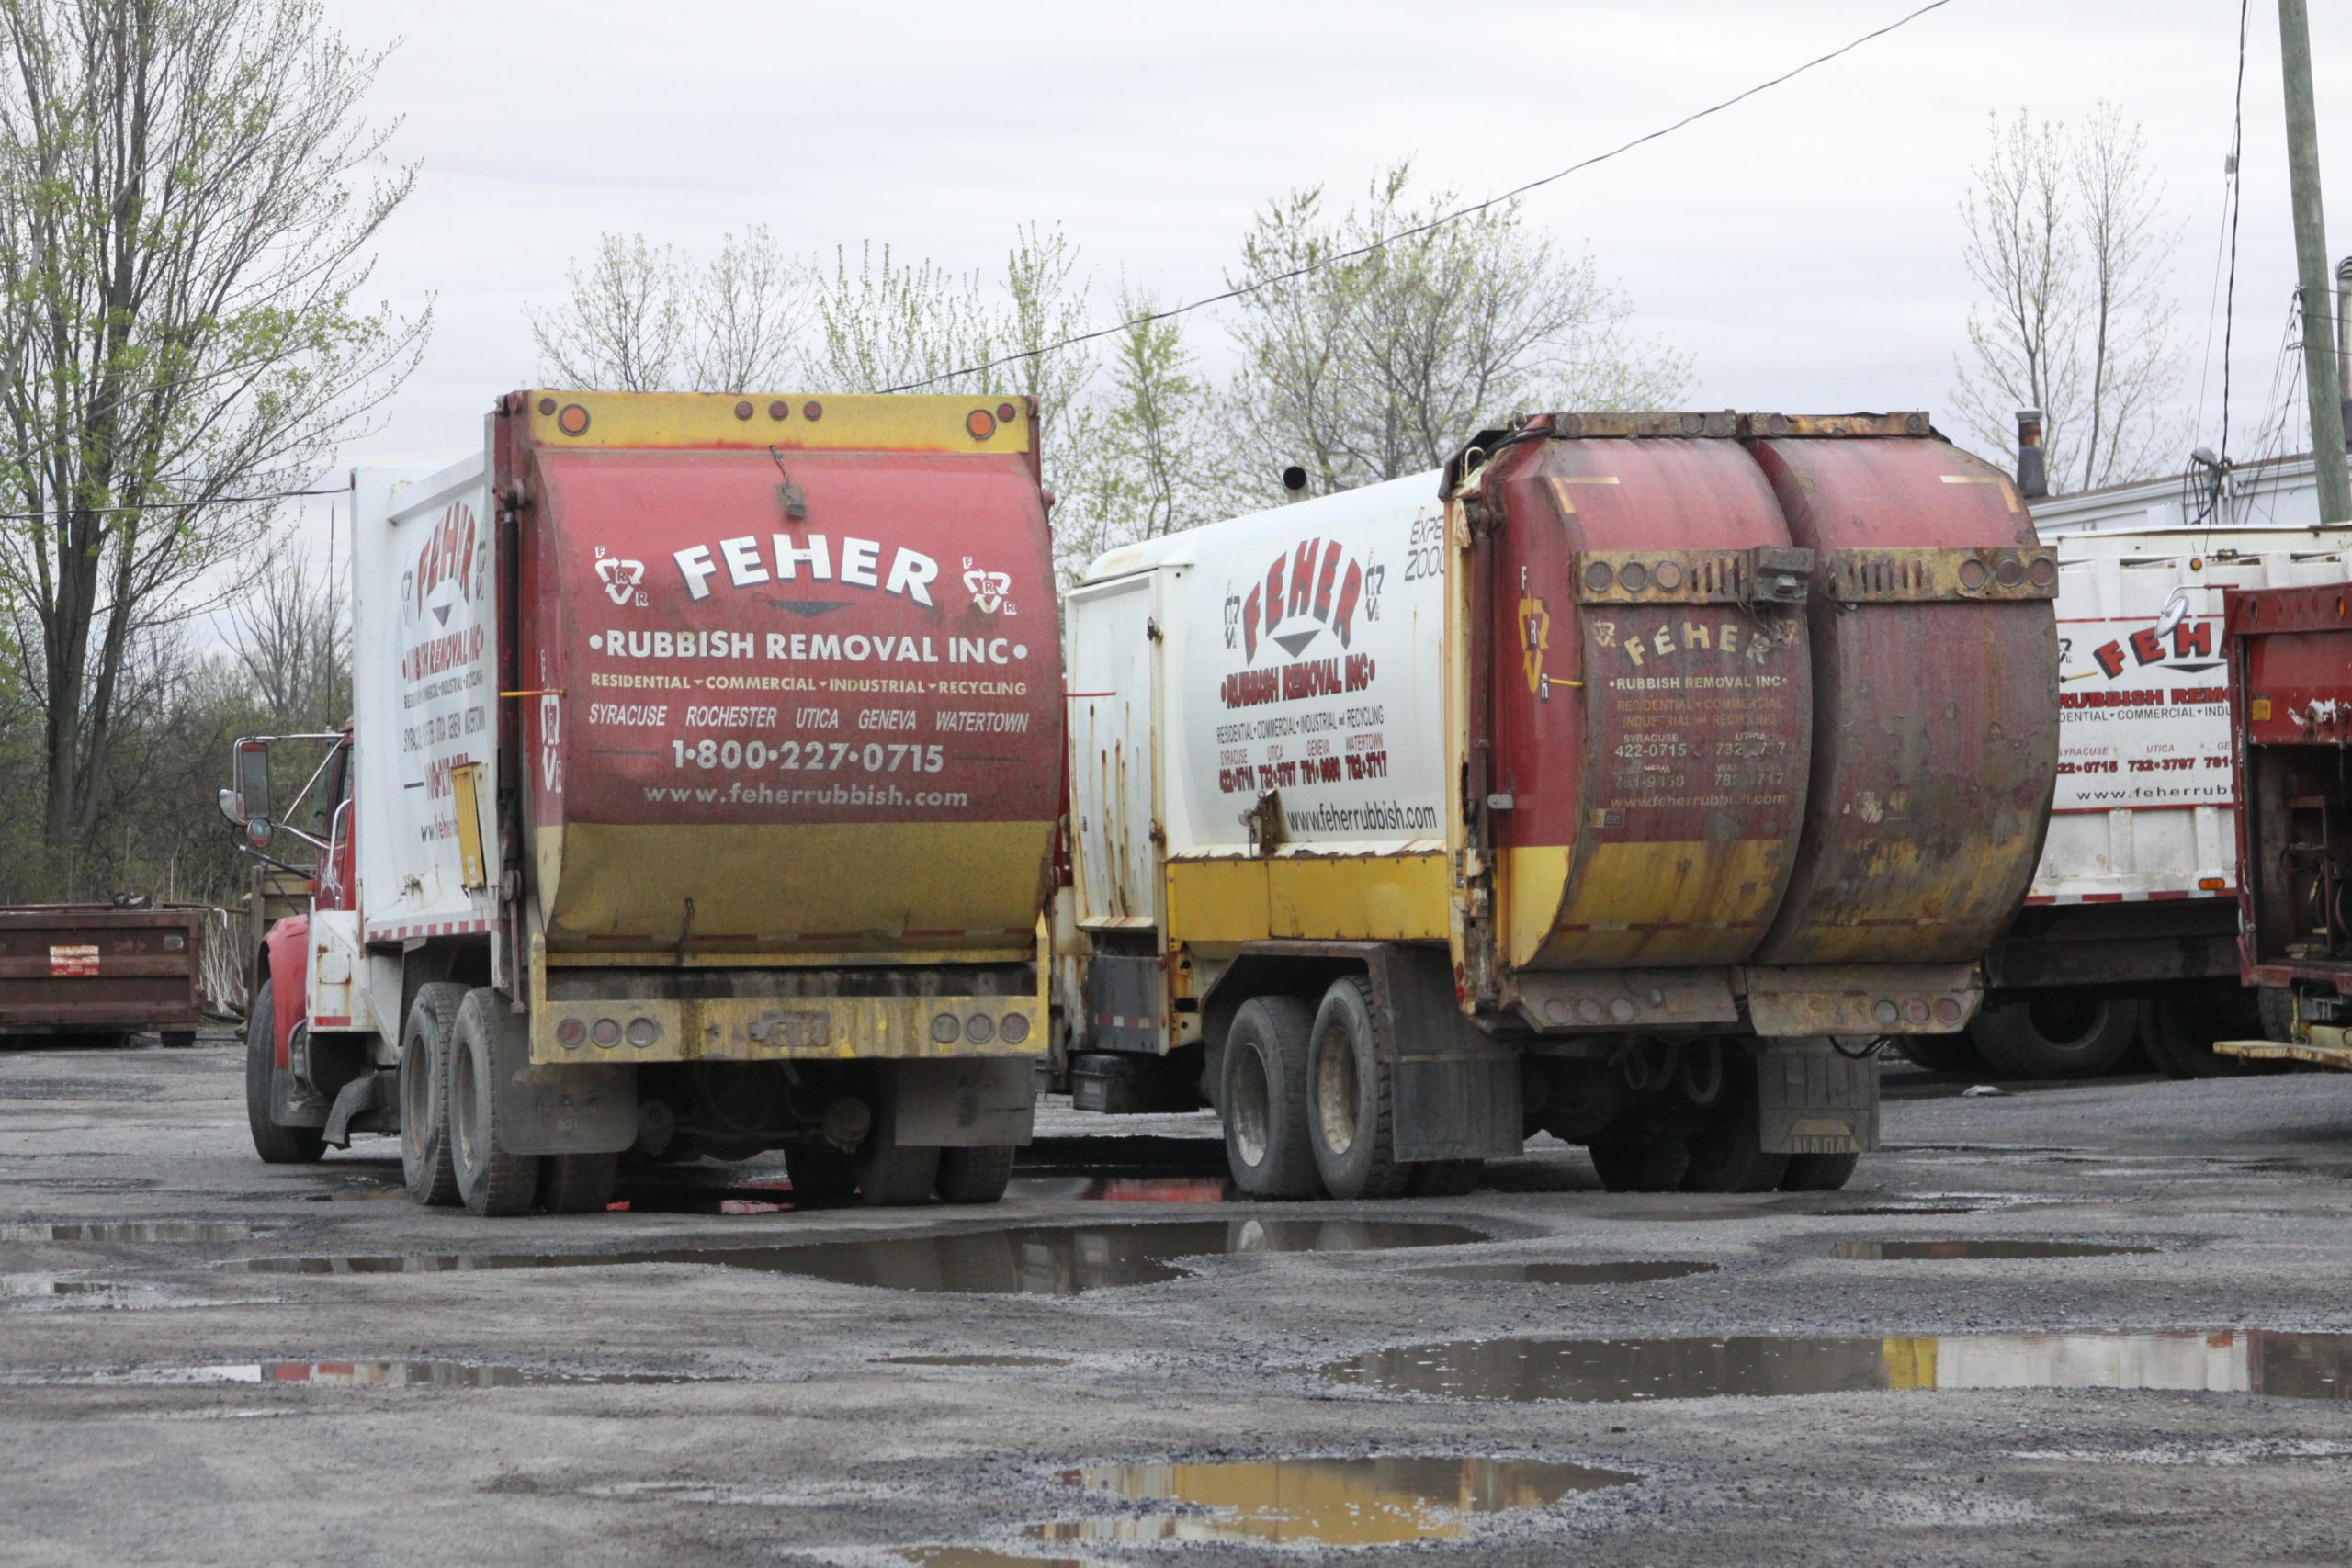 New Lawsuit Filed Against Feher Rubbish